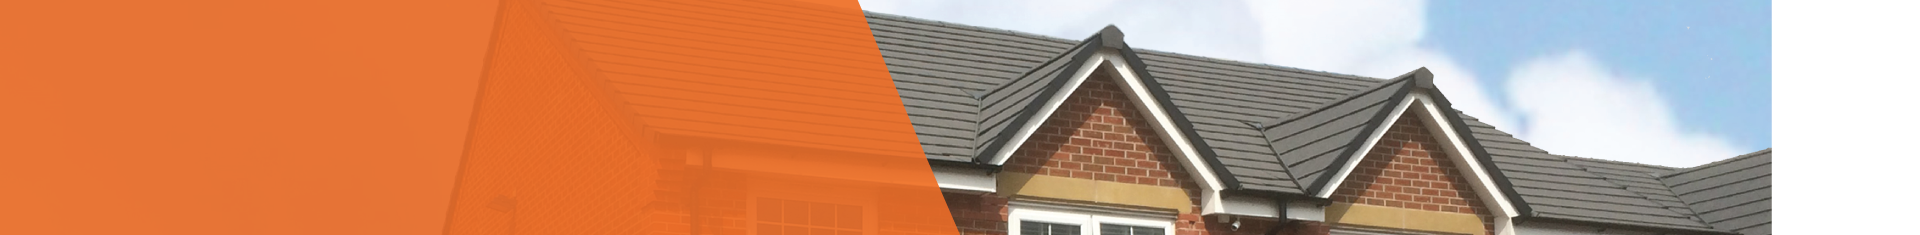 Slate Appearance Russell Roof Tiles